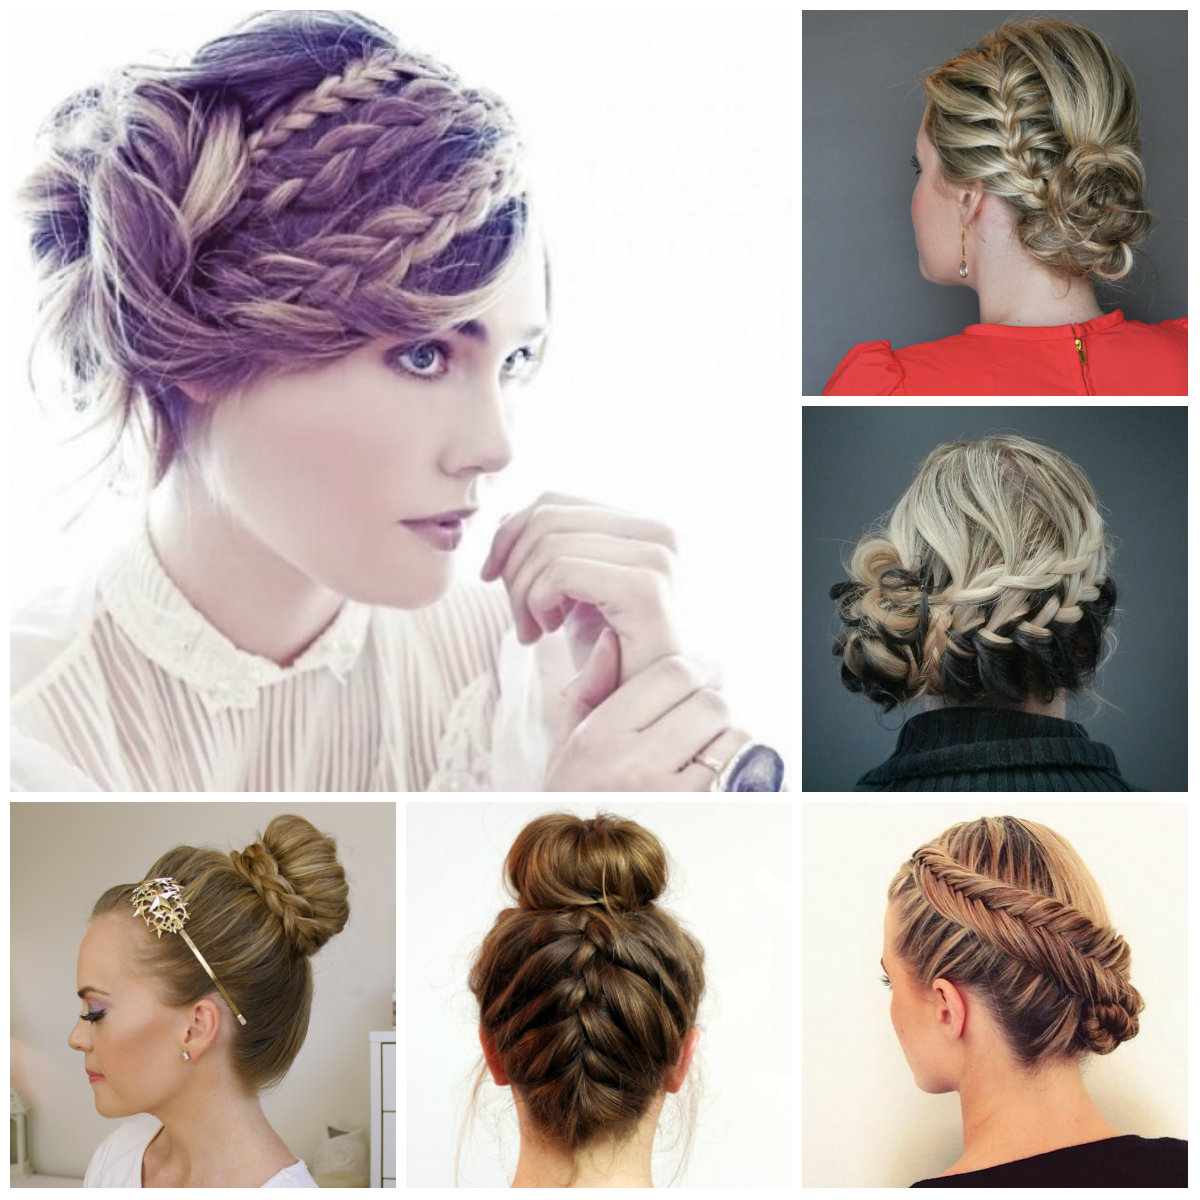 Enjoyable Coolest Braided Updo Hairstyles 2016 2017 Haircuts Hairstyles Hairstyle Inspiration Daily Dogsangcom